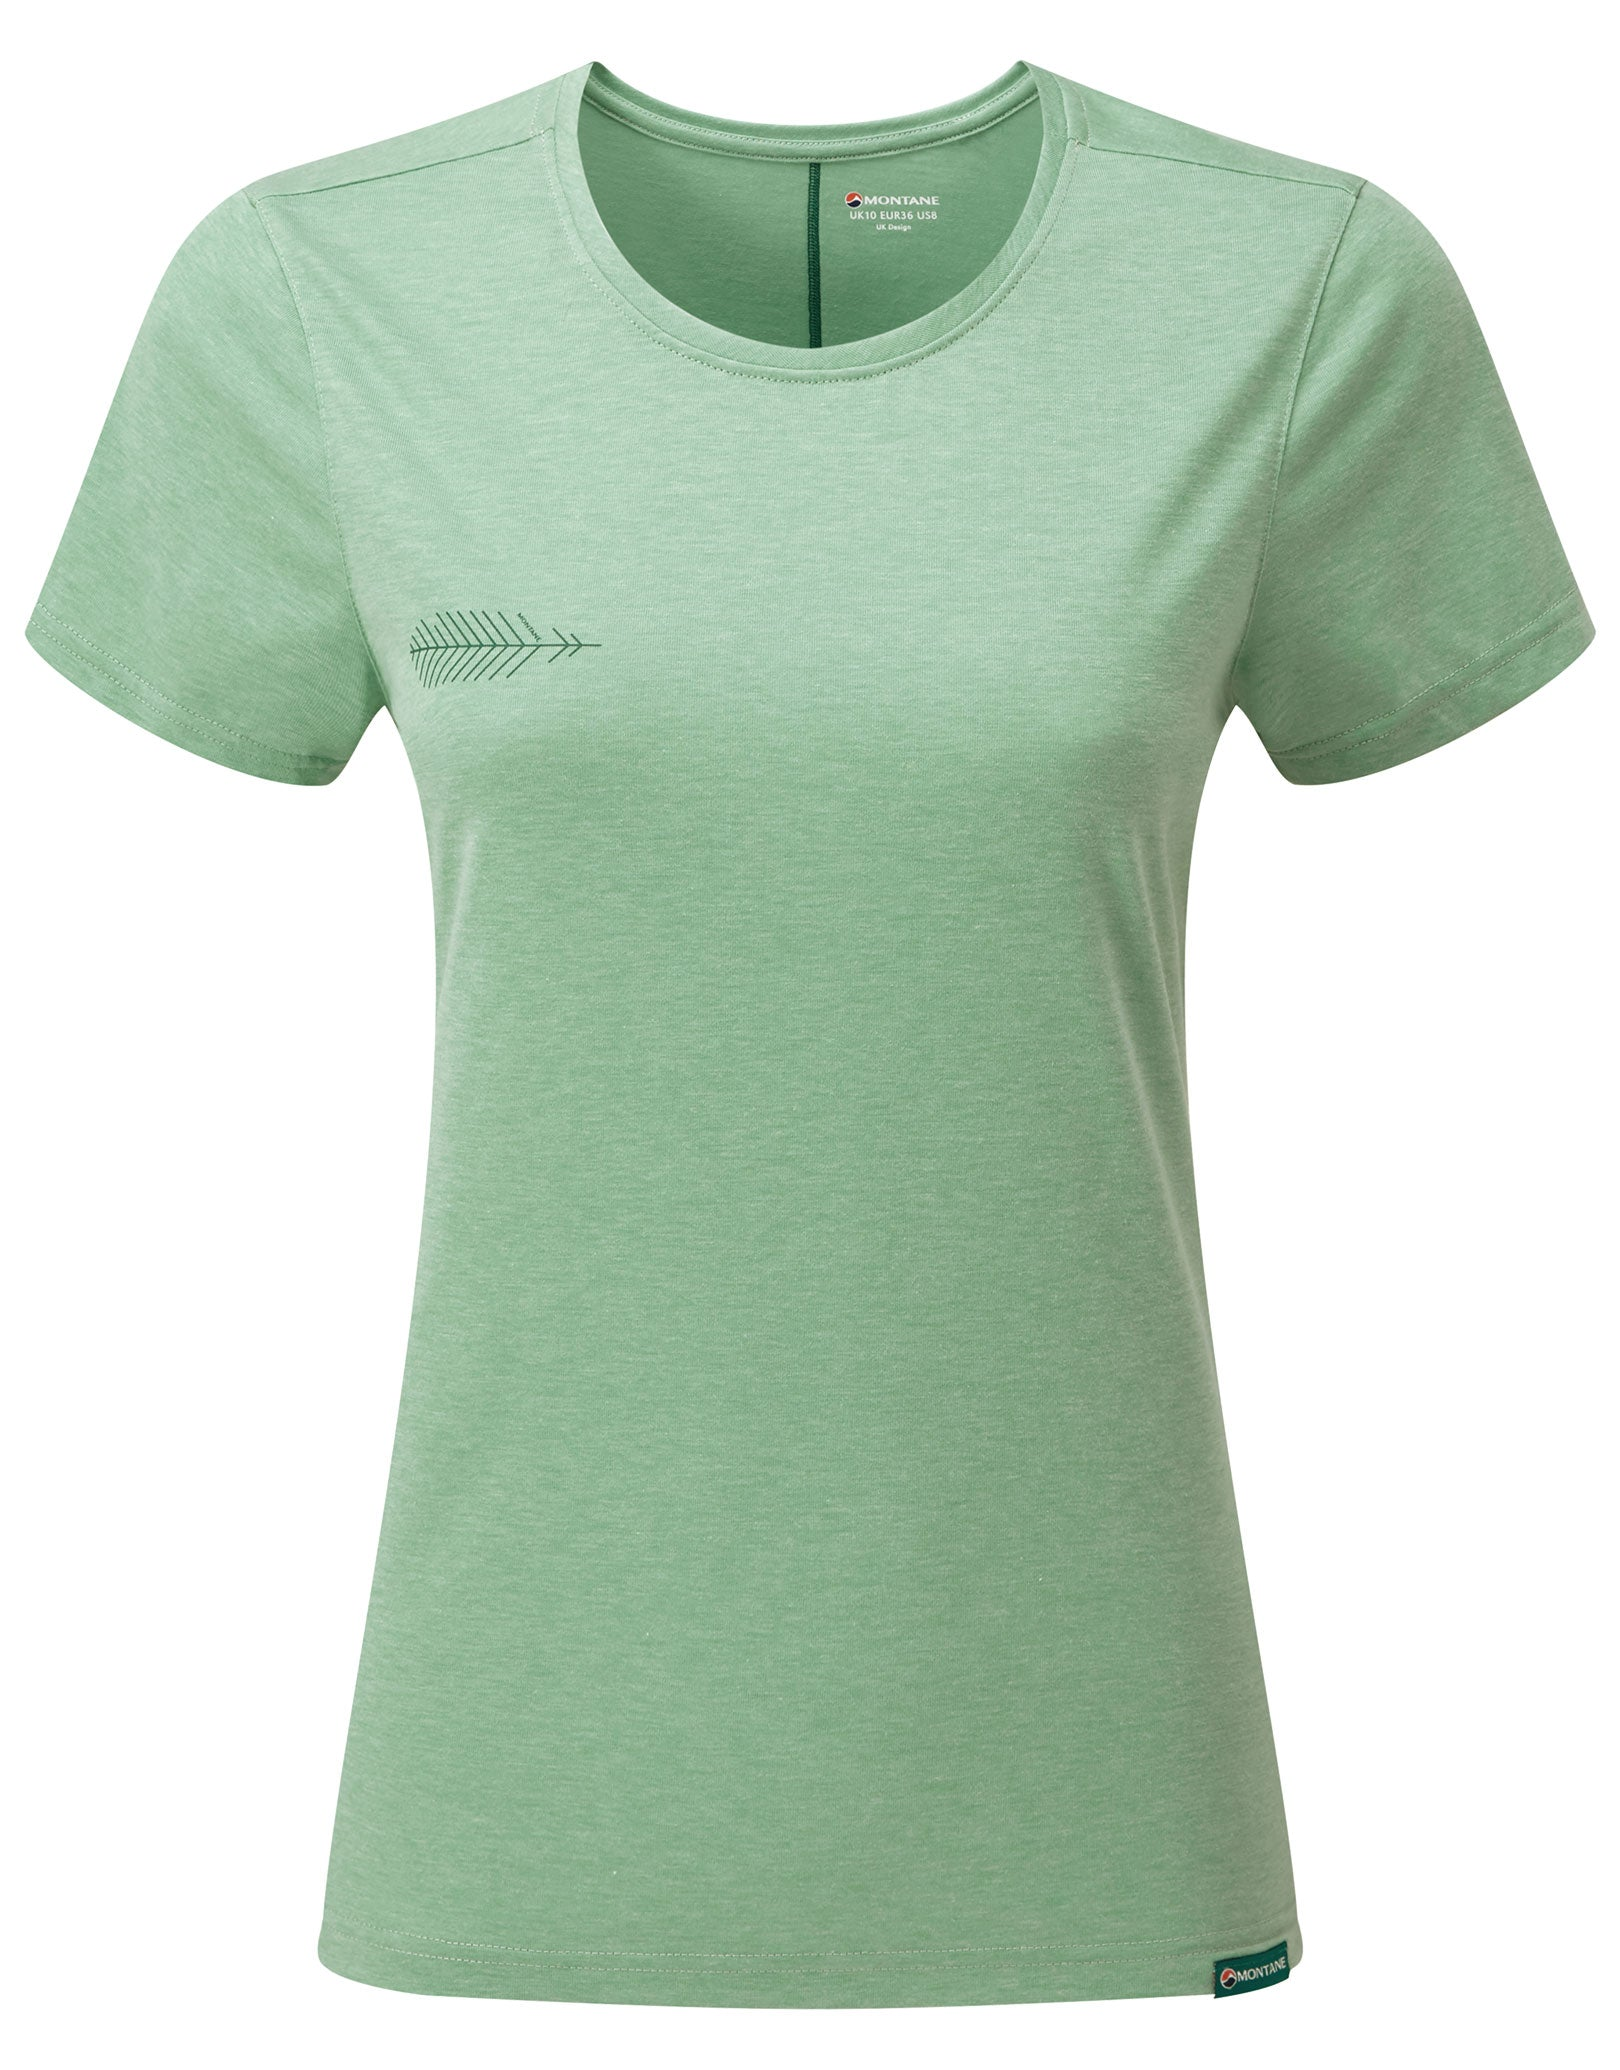 c3f711d6641 Montane Womens Neon Featherlite Clothing T Shirt - Matcha Green ...